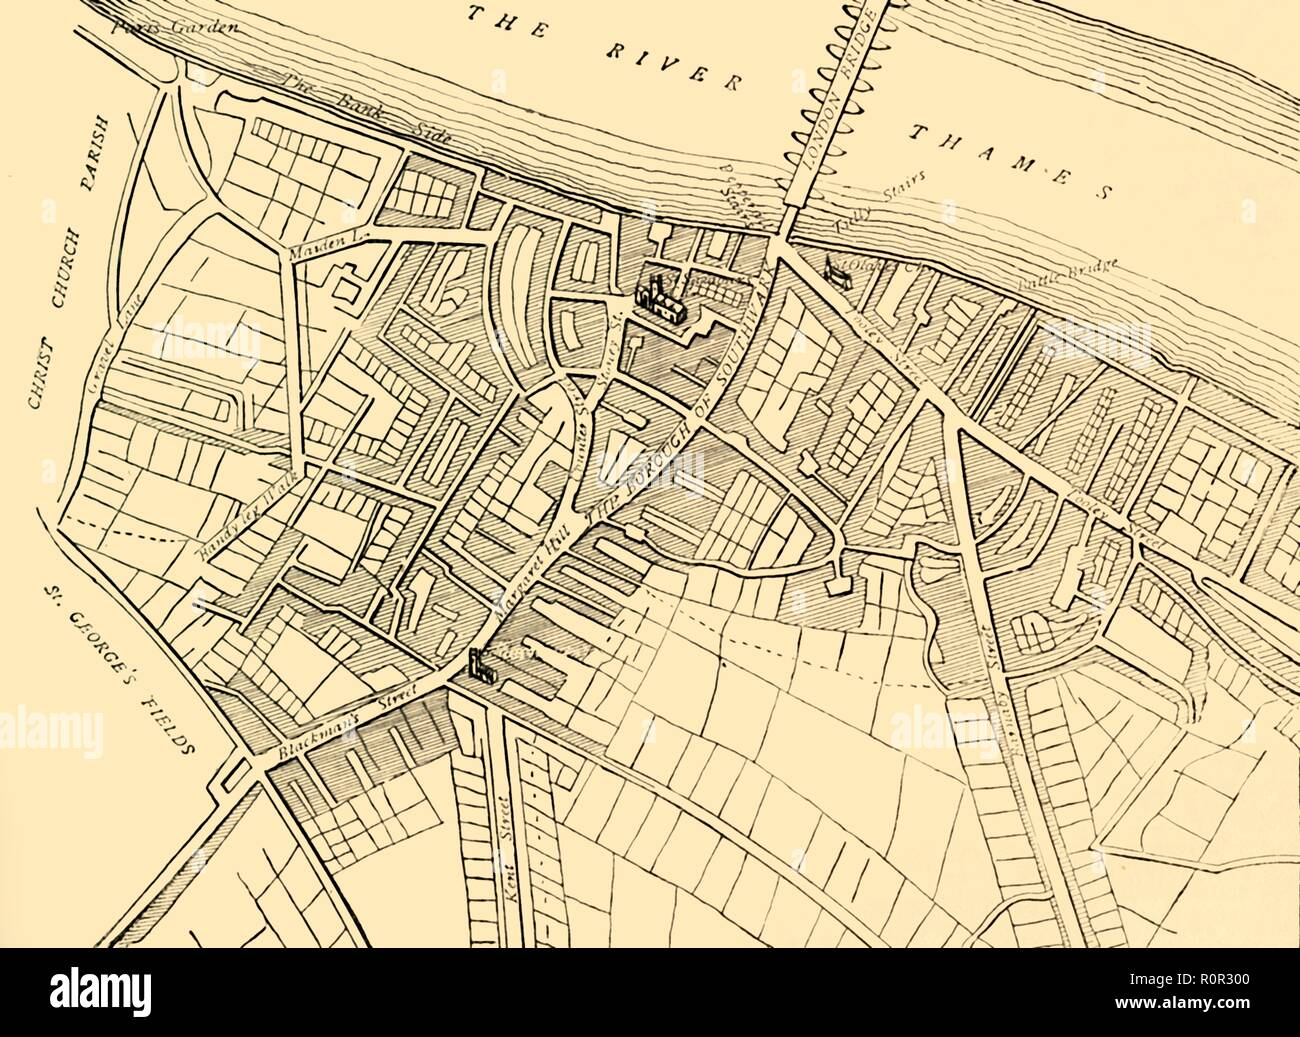 'Map of Southwark, 1720', (c1878). Map showing the village of Southwark on the south bank of the River Thames, in what is now part of greater London. Places shown include the Bank Side, London Bridge, Southwark Cathedral, St George's Fields and Bermondsey Street. From Old and New London: A Narrative of Its History, Its People, And Its Places. The Southern Suburbs, Volume VI, by Edward Walford. [Cassell, Petter, Galpin & Co., London, Paris & New York, c1878] - Stock Image